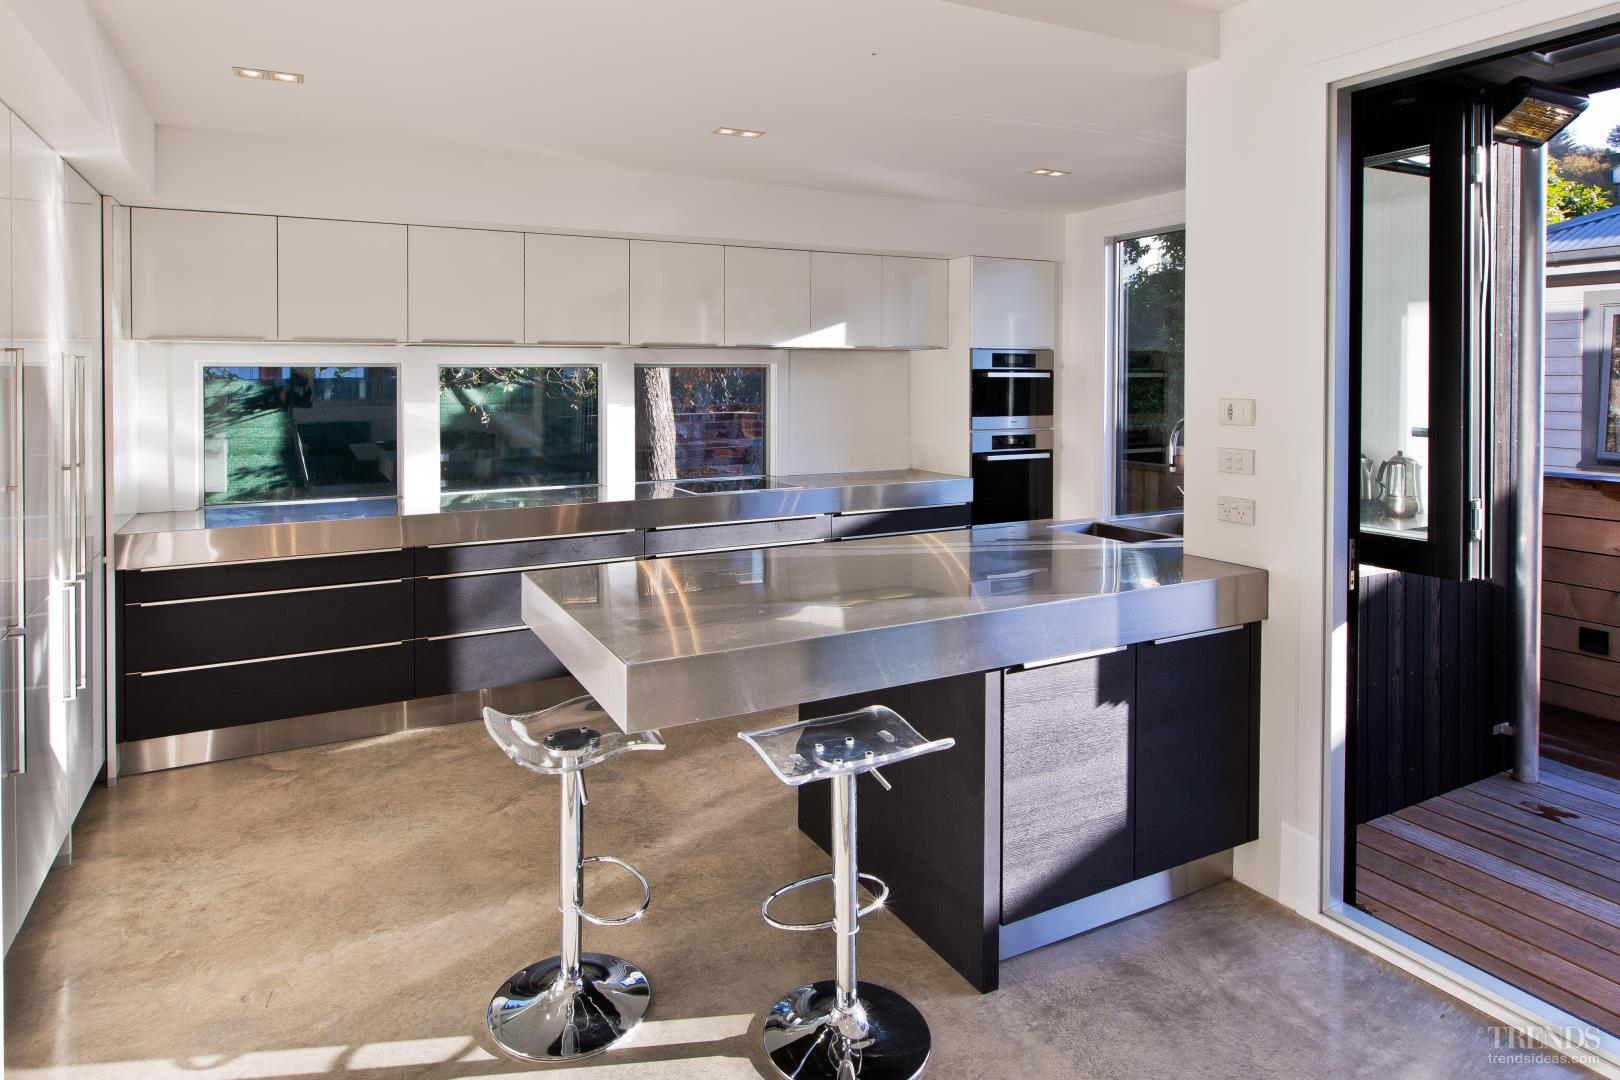 Open contemporary kitchen with stainless steel benchtops and